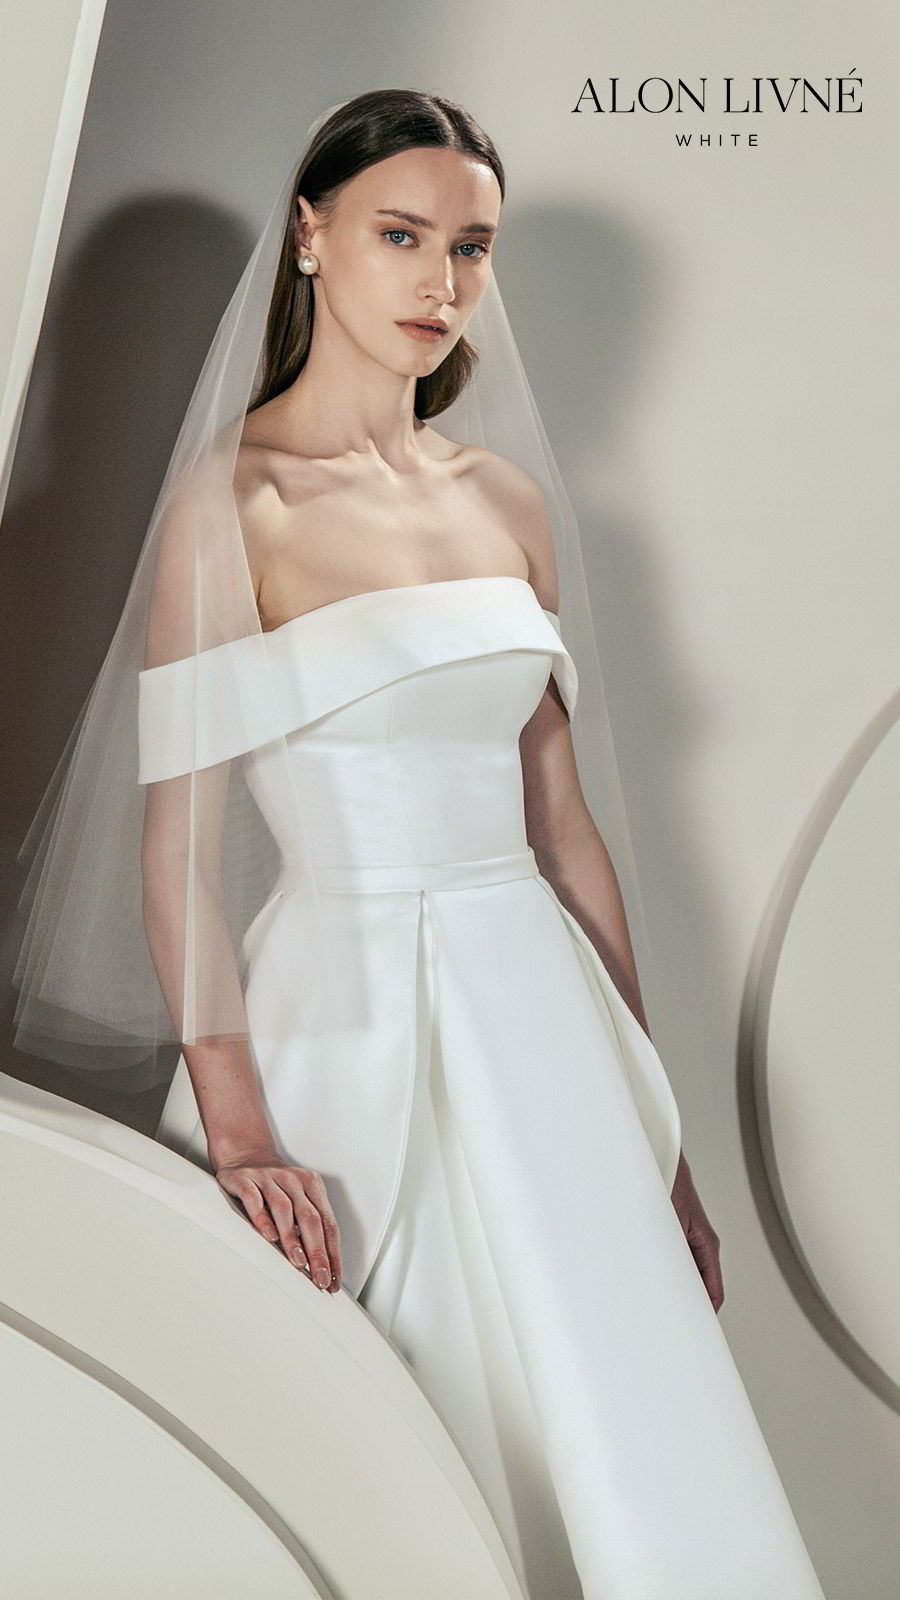 alon livne white spring 2020 bridal off shoulder straight across neckline foldover ball gown a line simple wedding dress high low skirt pocket (erica) clean minimal modern chic zv